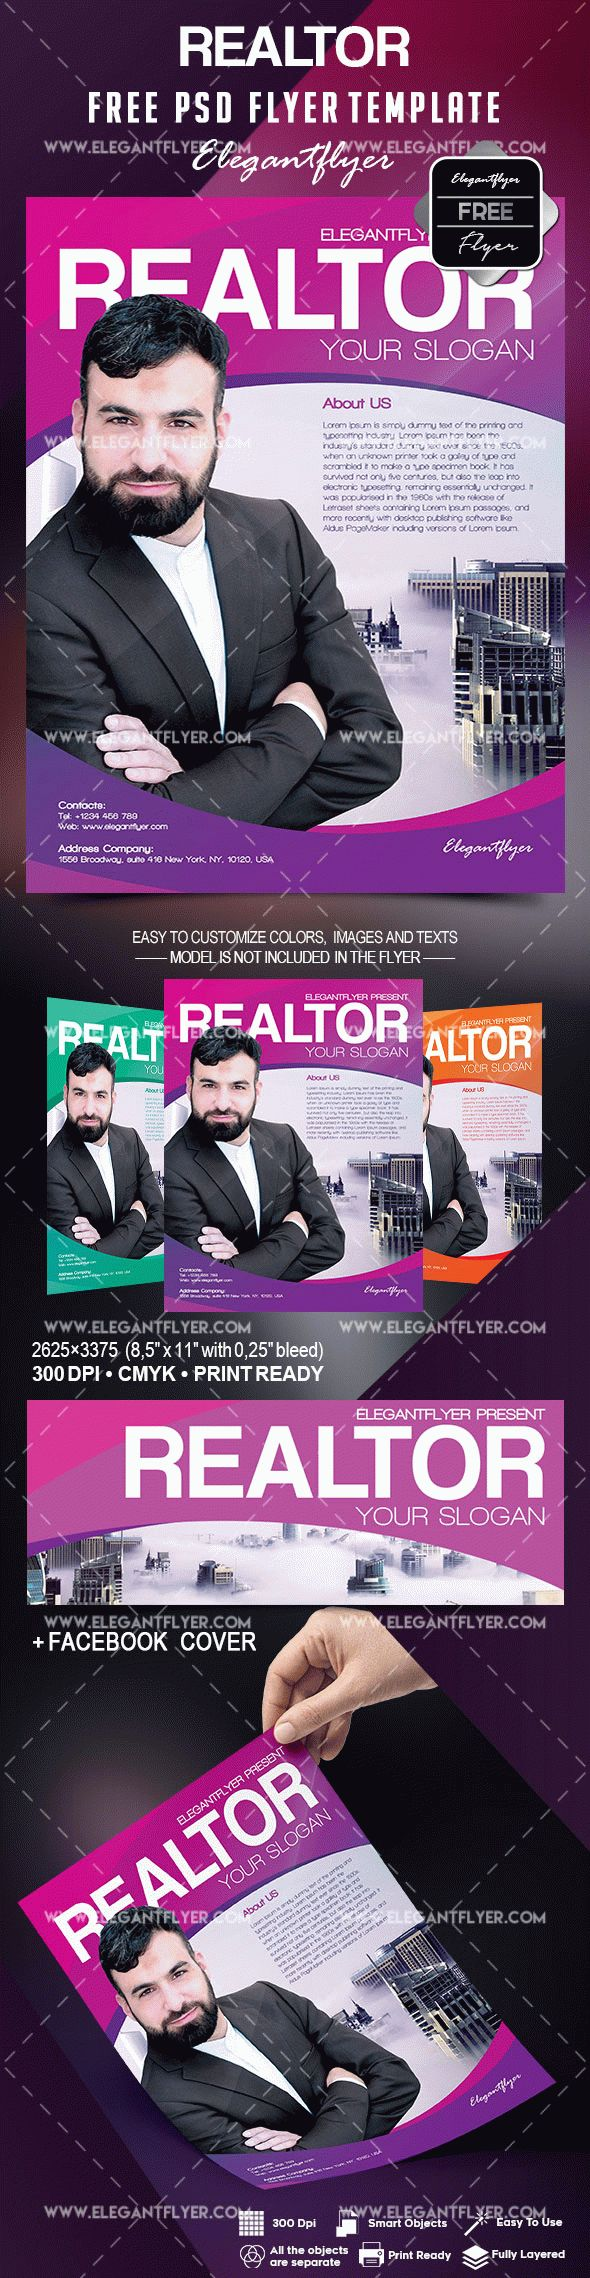 Realtor Flyer Template Free